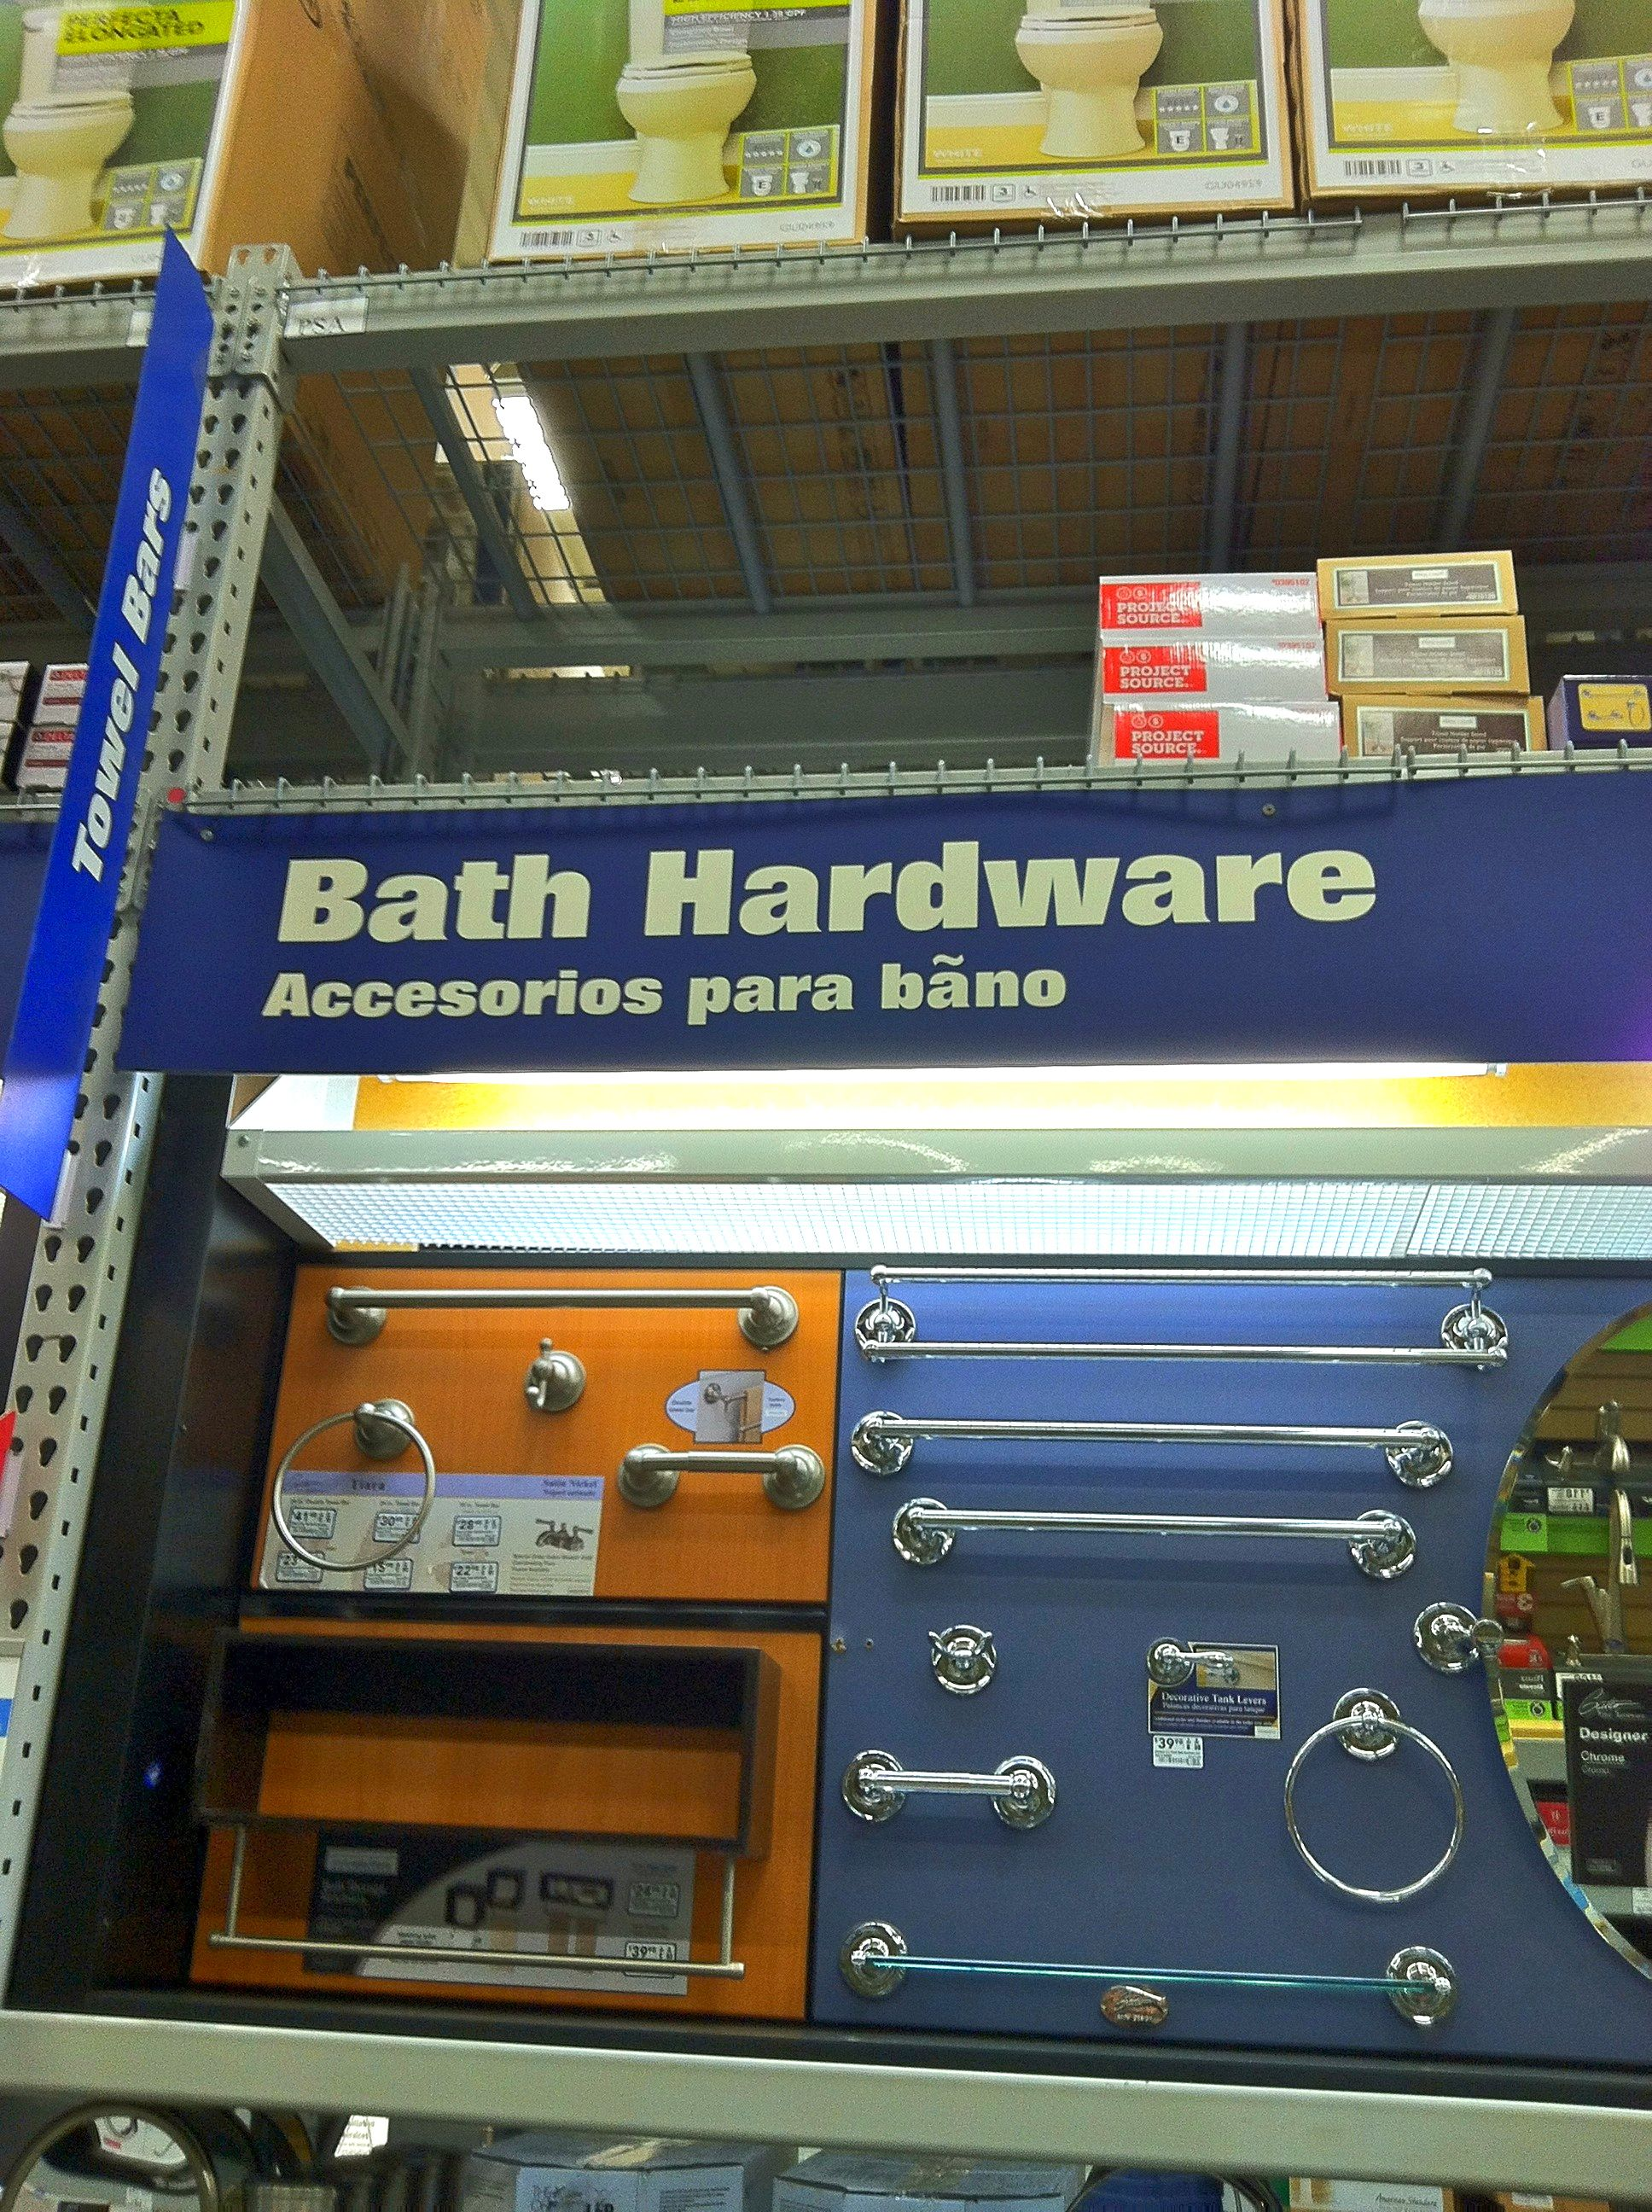 It Is Especially Egregious When A Hardware Store, Such As Loweu0027s, Does This  In An Attempt To Attract Spanish Speaking Customers.